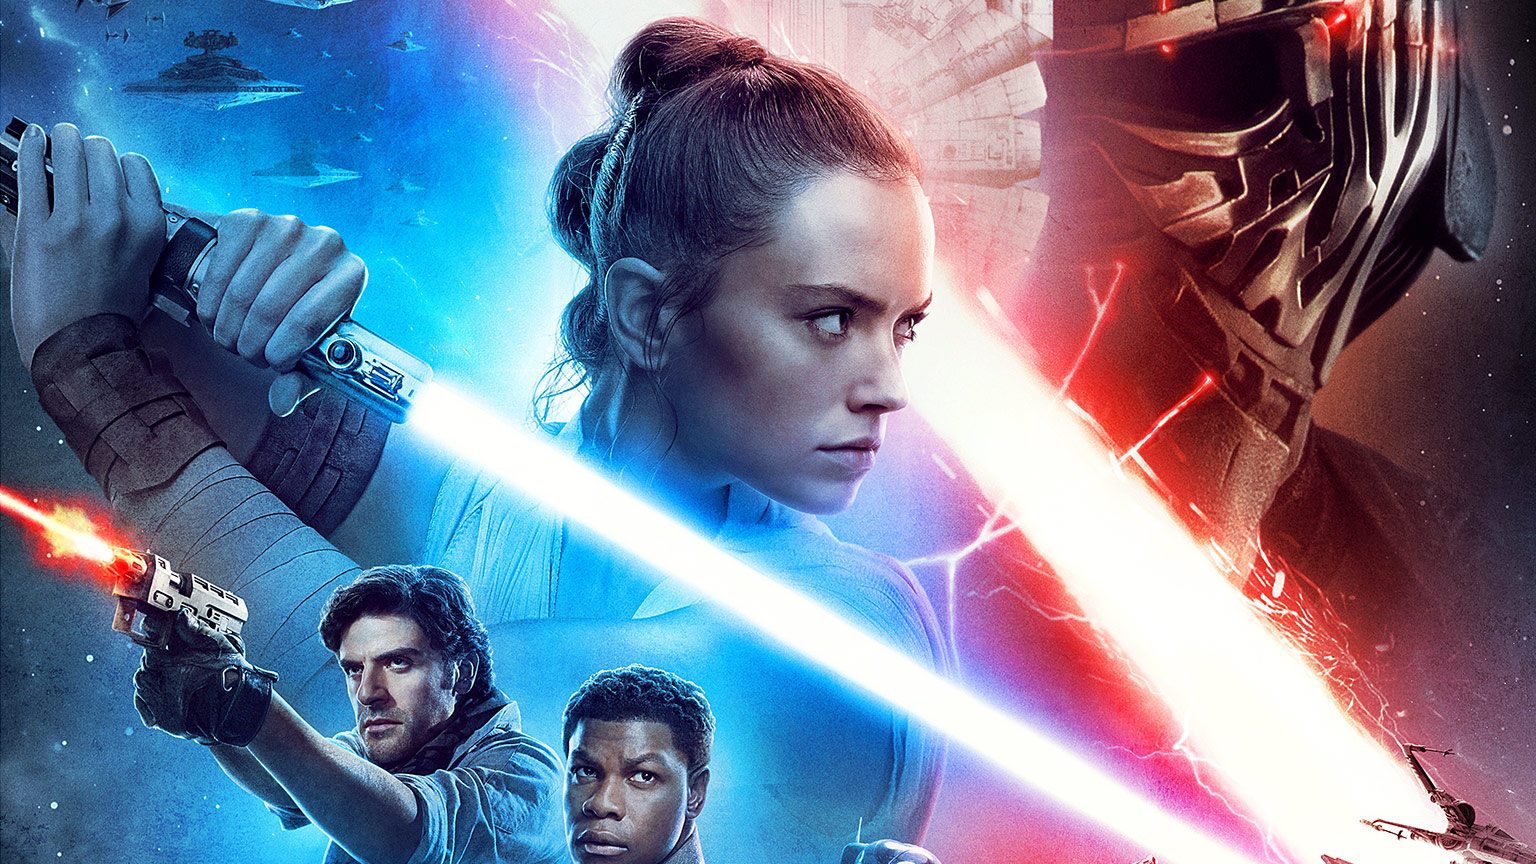 Star Wars: The Rise of Skywalker theatrical poster upper portion with Rey, Kylo Ren, and others